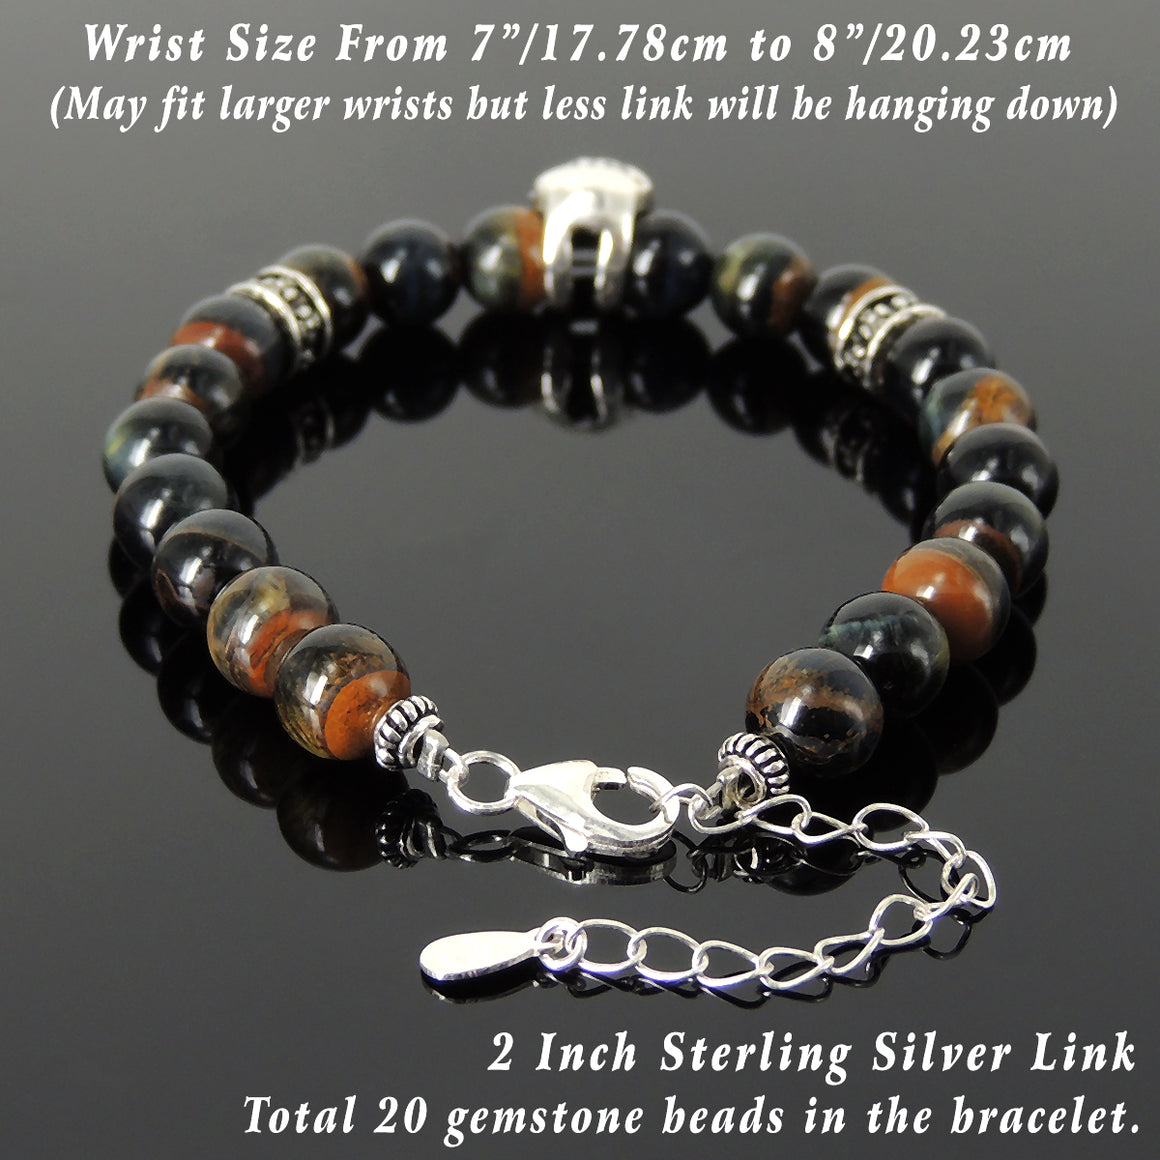 8mm Rare Mixed Blue Tiger Eye Healing Gemstone Bracelet with S925 Sterling Silver Protection Skull, Cross Pattern Spacers, Chain & Clasp - Handmade by Gem & Silver BR1414